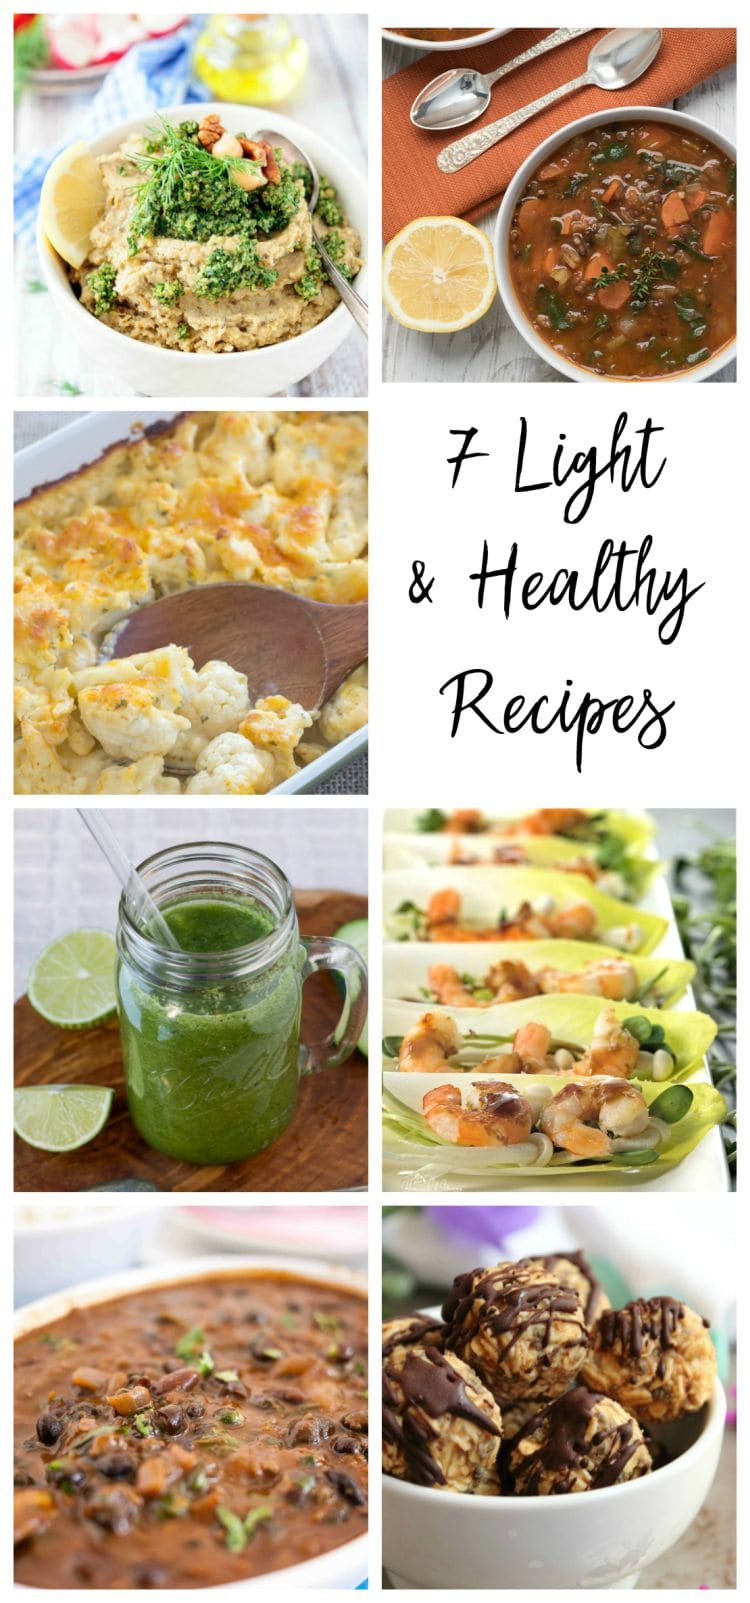 7 Light and Healthy Recipes from #foodblogtribe via flouronmyface.com